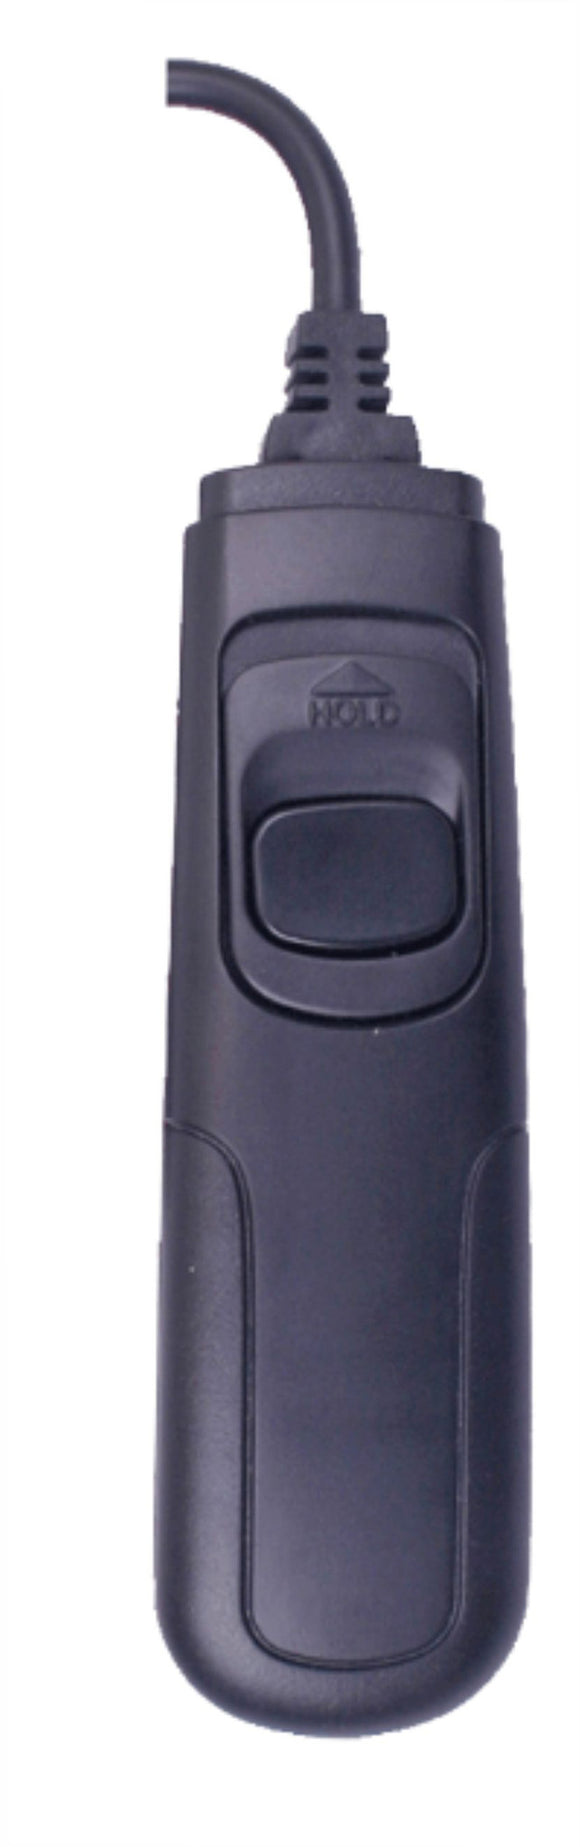 Wired Shutter Release for Nikon 10 Pin